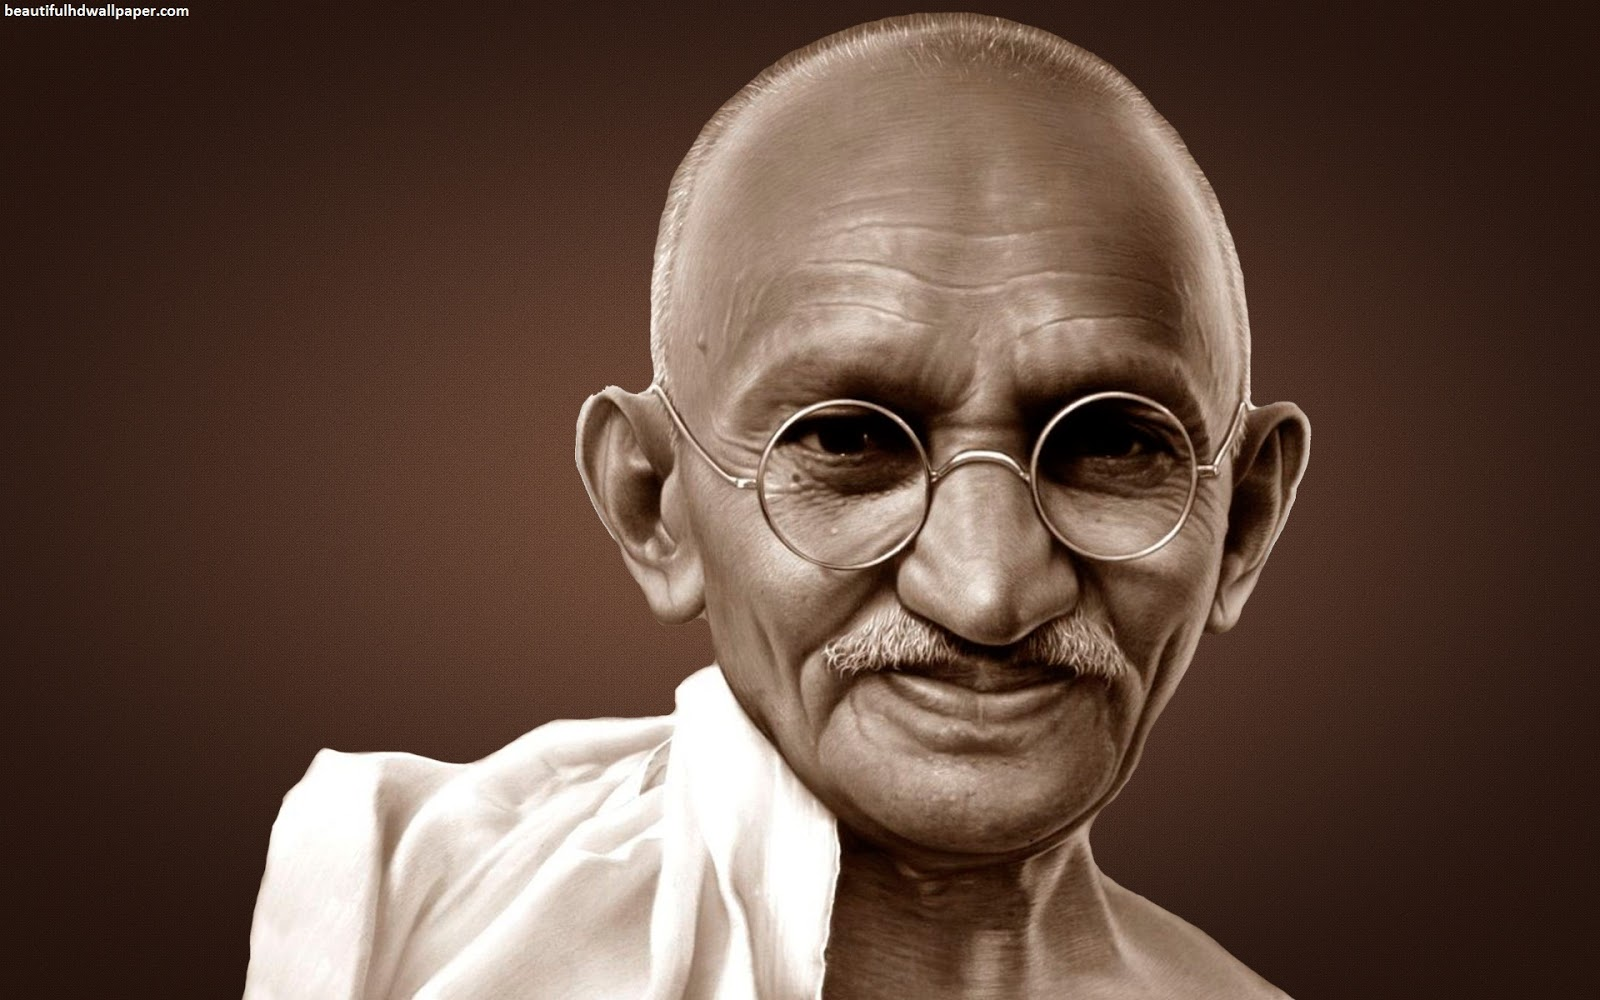 gandhi commemorative speech Essays - largest database of quality sample essays and research papers on mahatma gandhi commemorative speech.